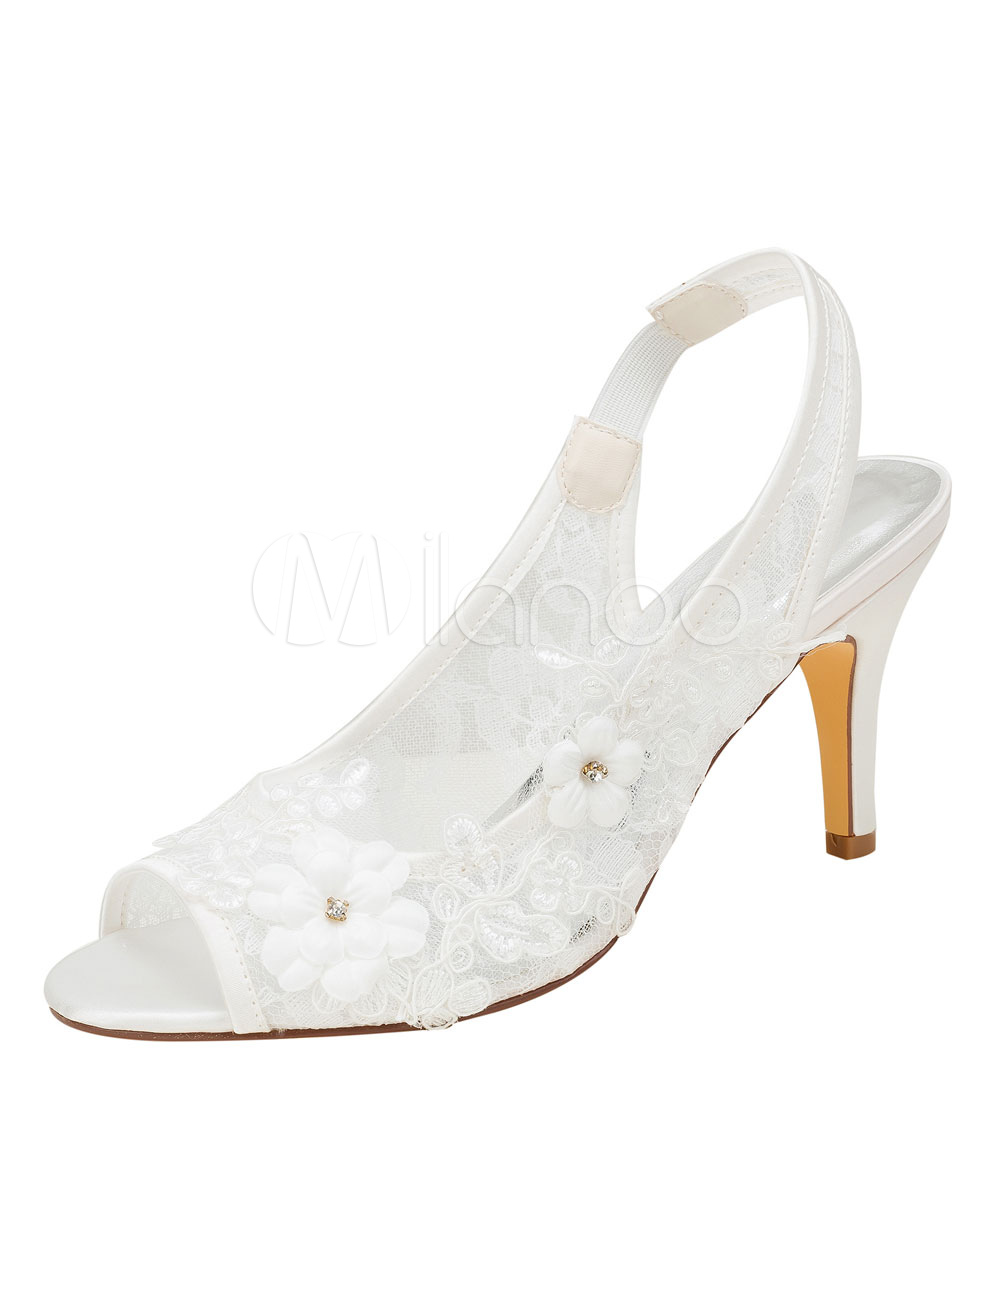 Buy Lace Wedding Shoes High Heel Ivory Peep Toe Flowers Beaded Slingbacks Bridal Pumps for $52.24 in Milanoo store